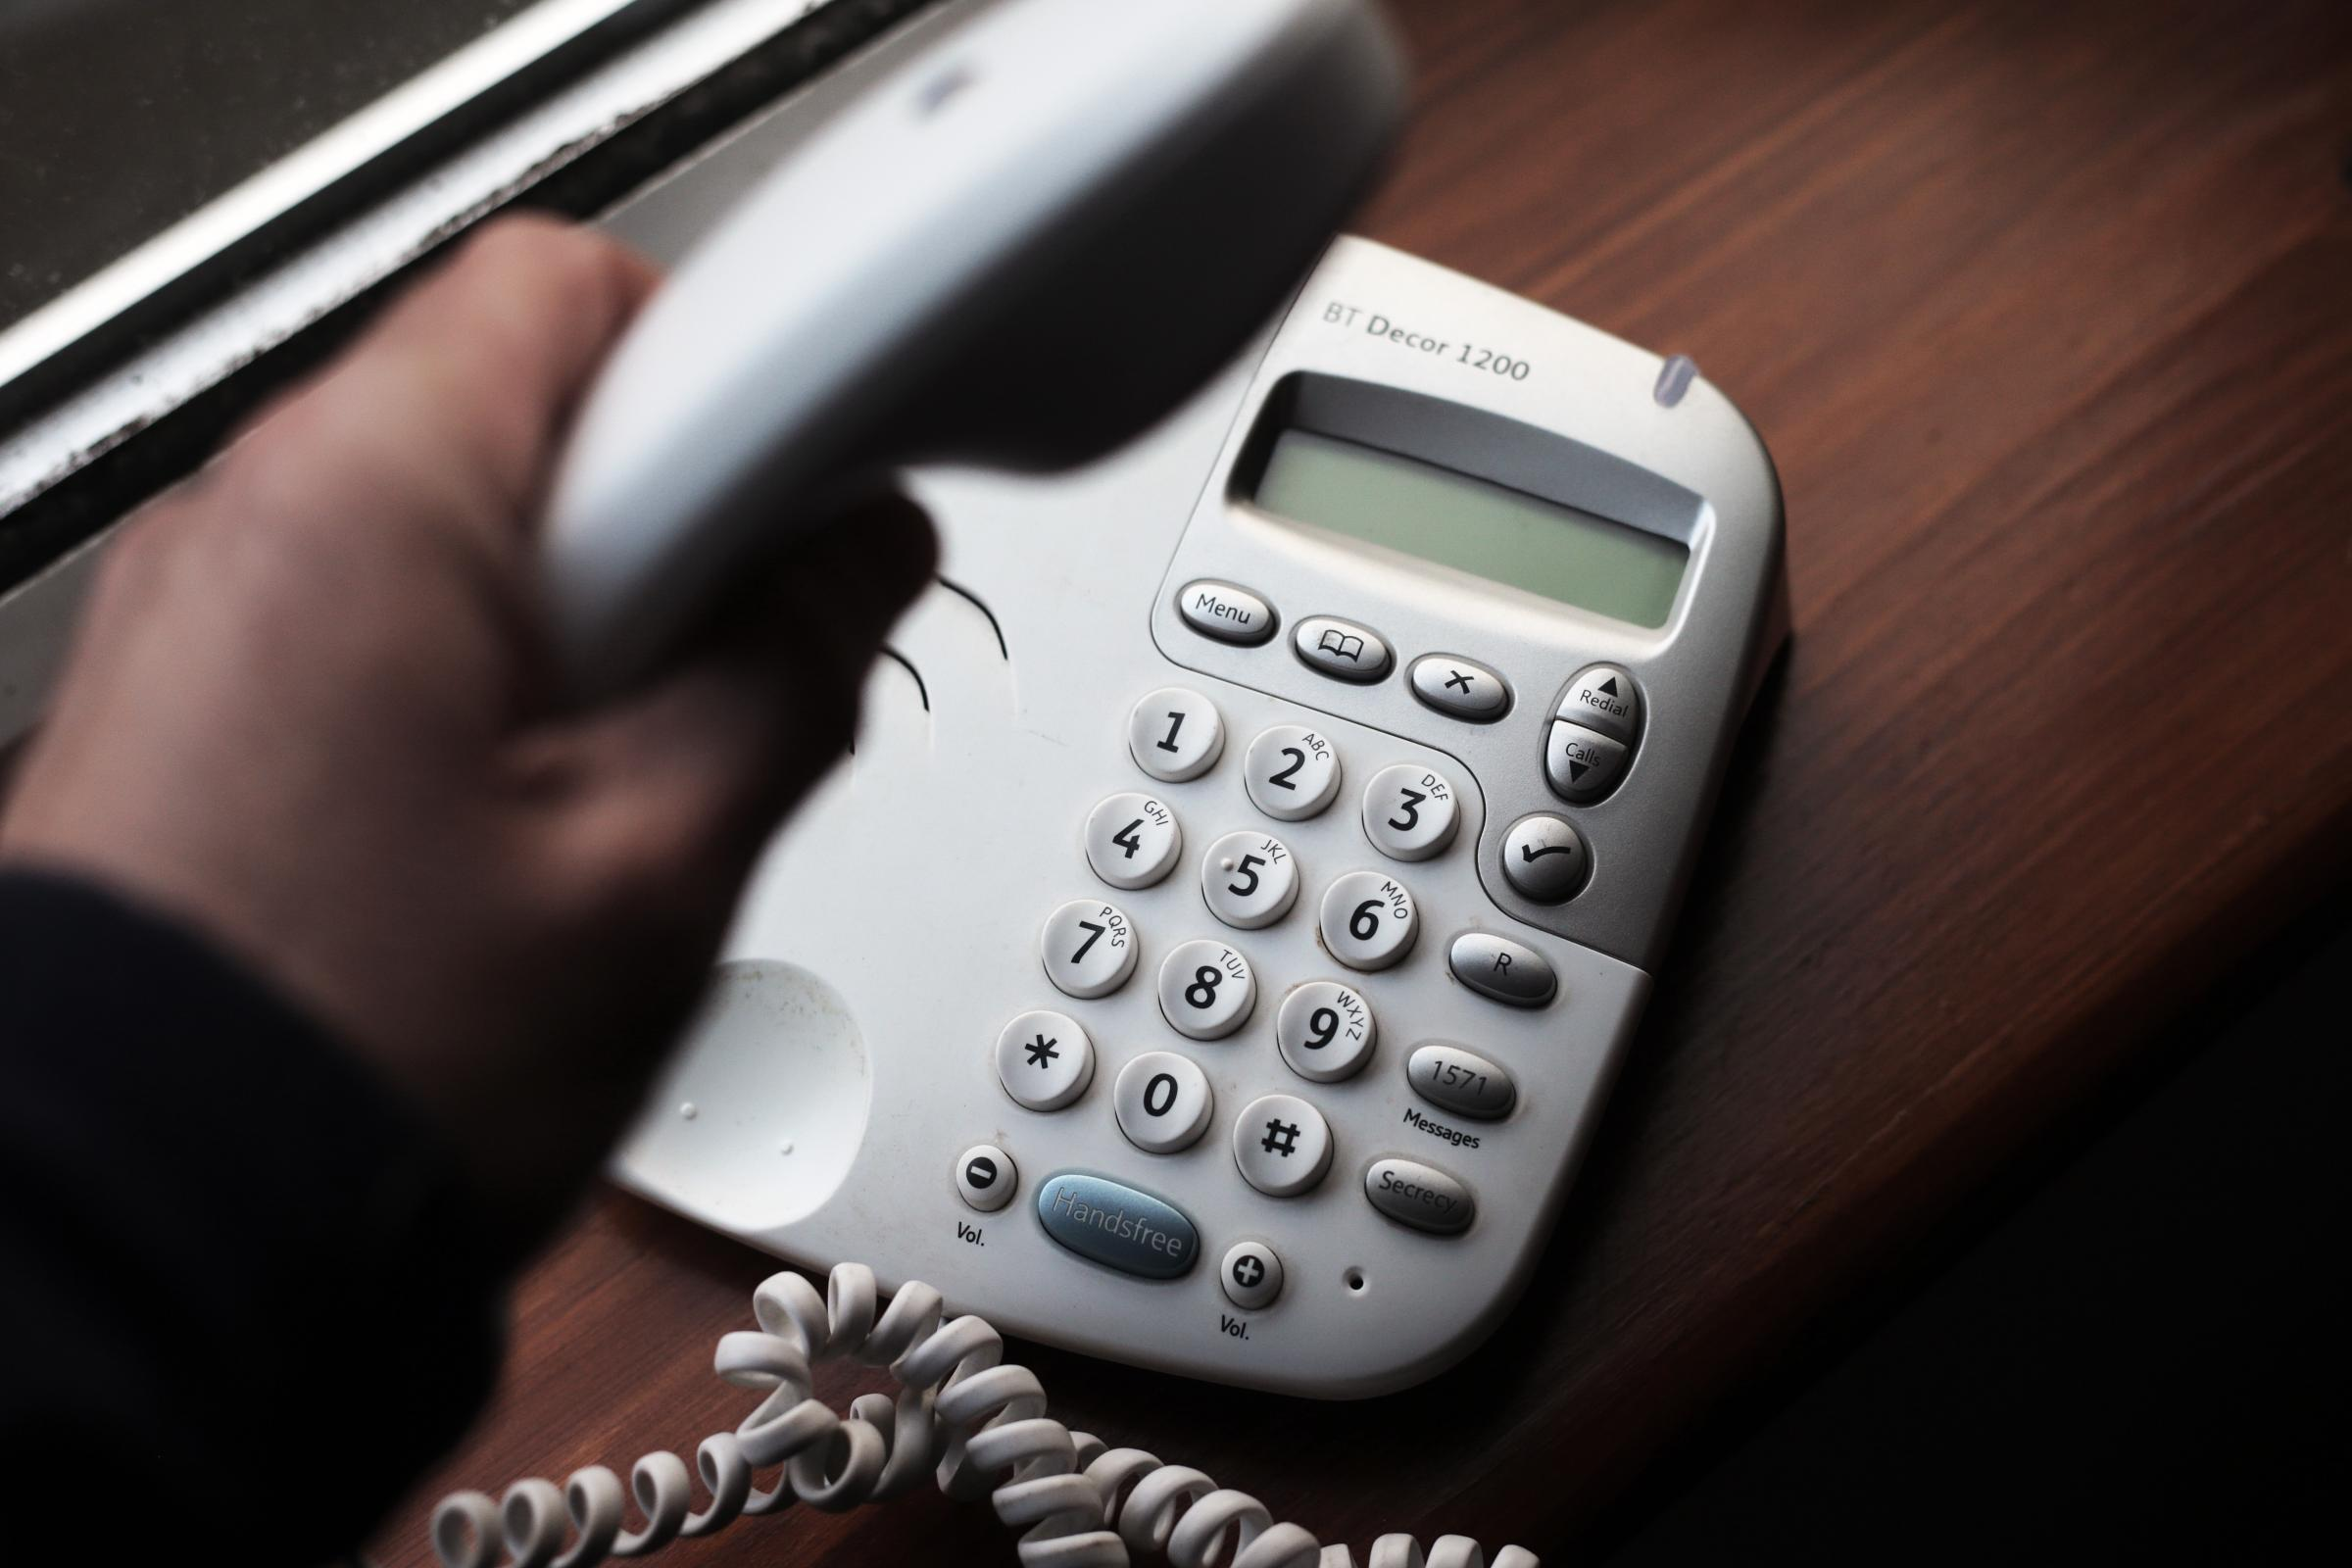 MPs urge Government to act over late night nuisance calls